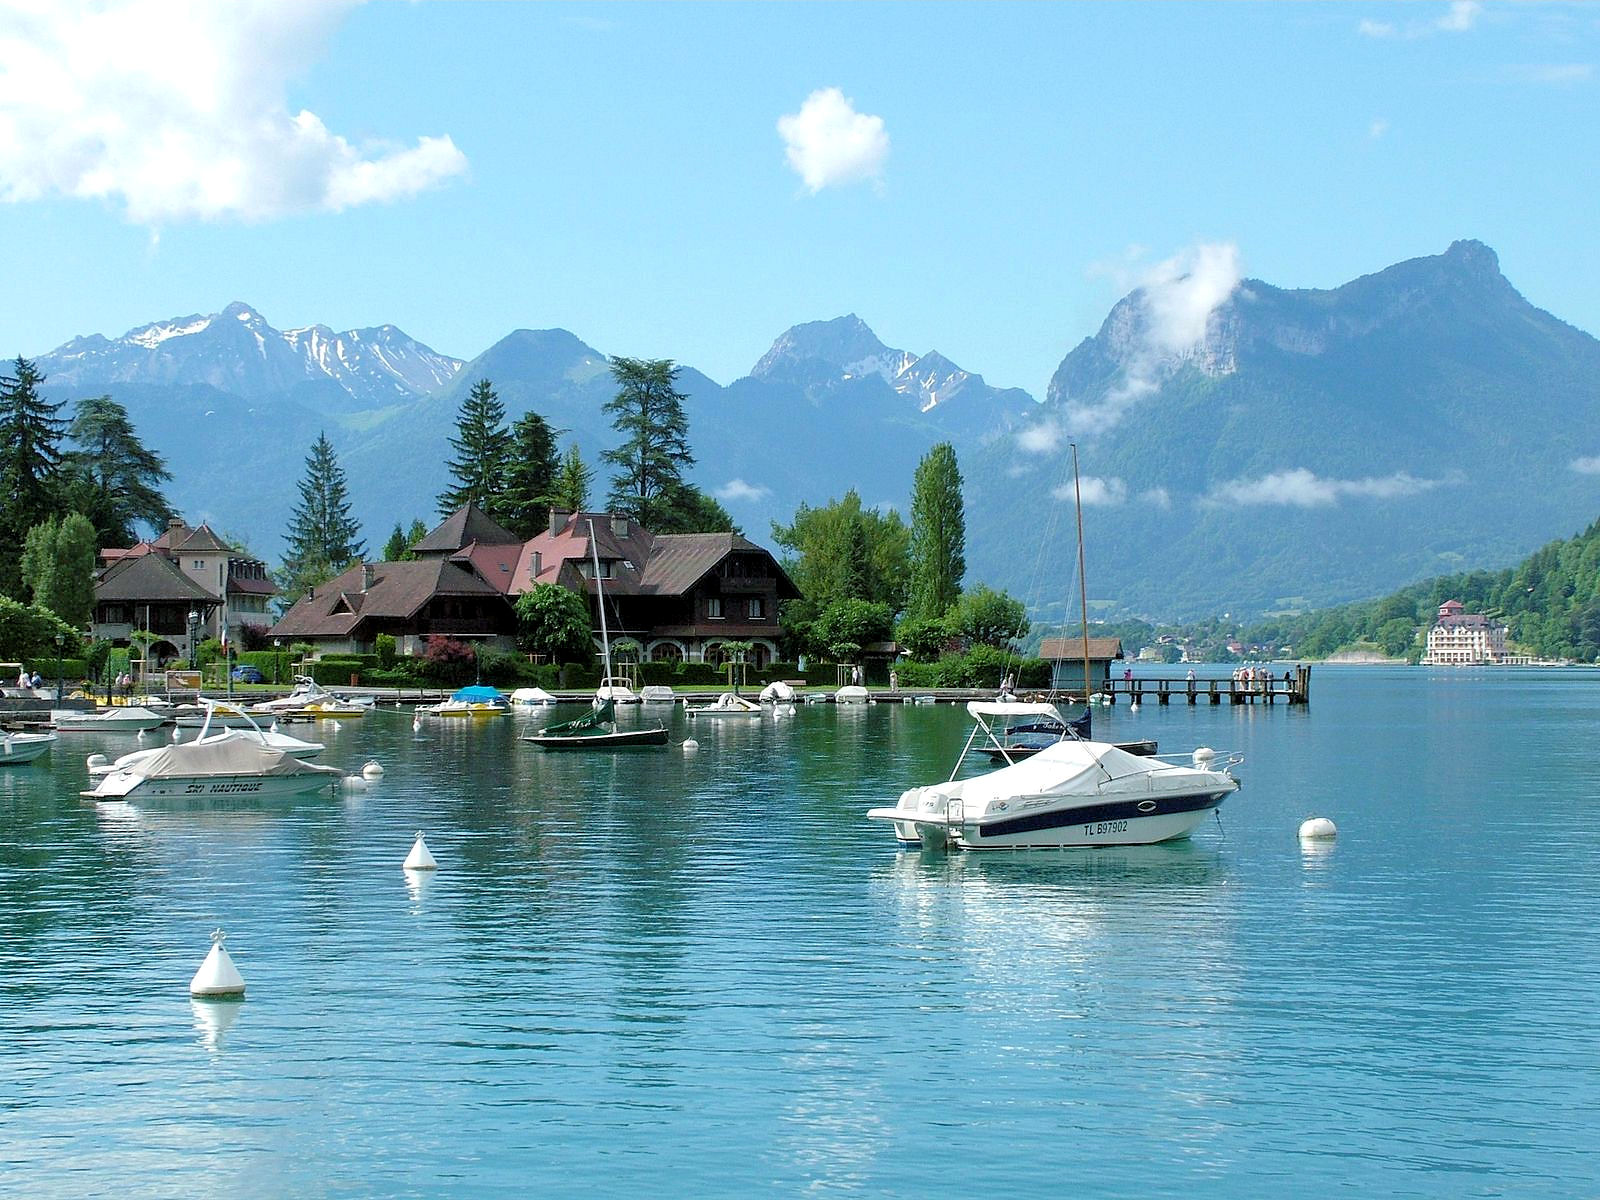 Lake Annecy near the borders of France, Switzerland and Italy offers a holiday on the water without the hoards of tourists.